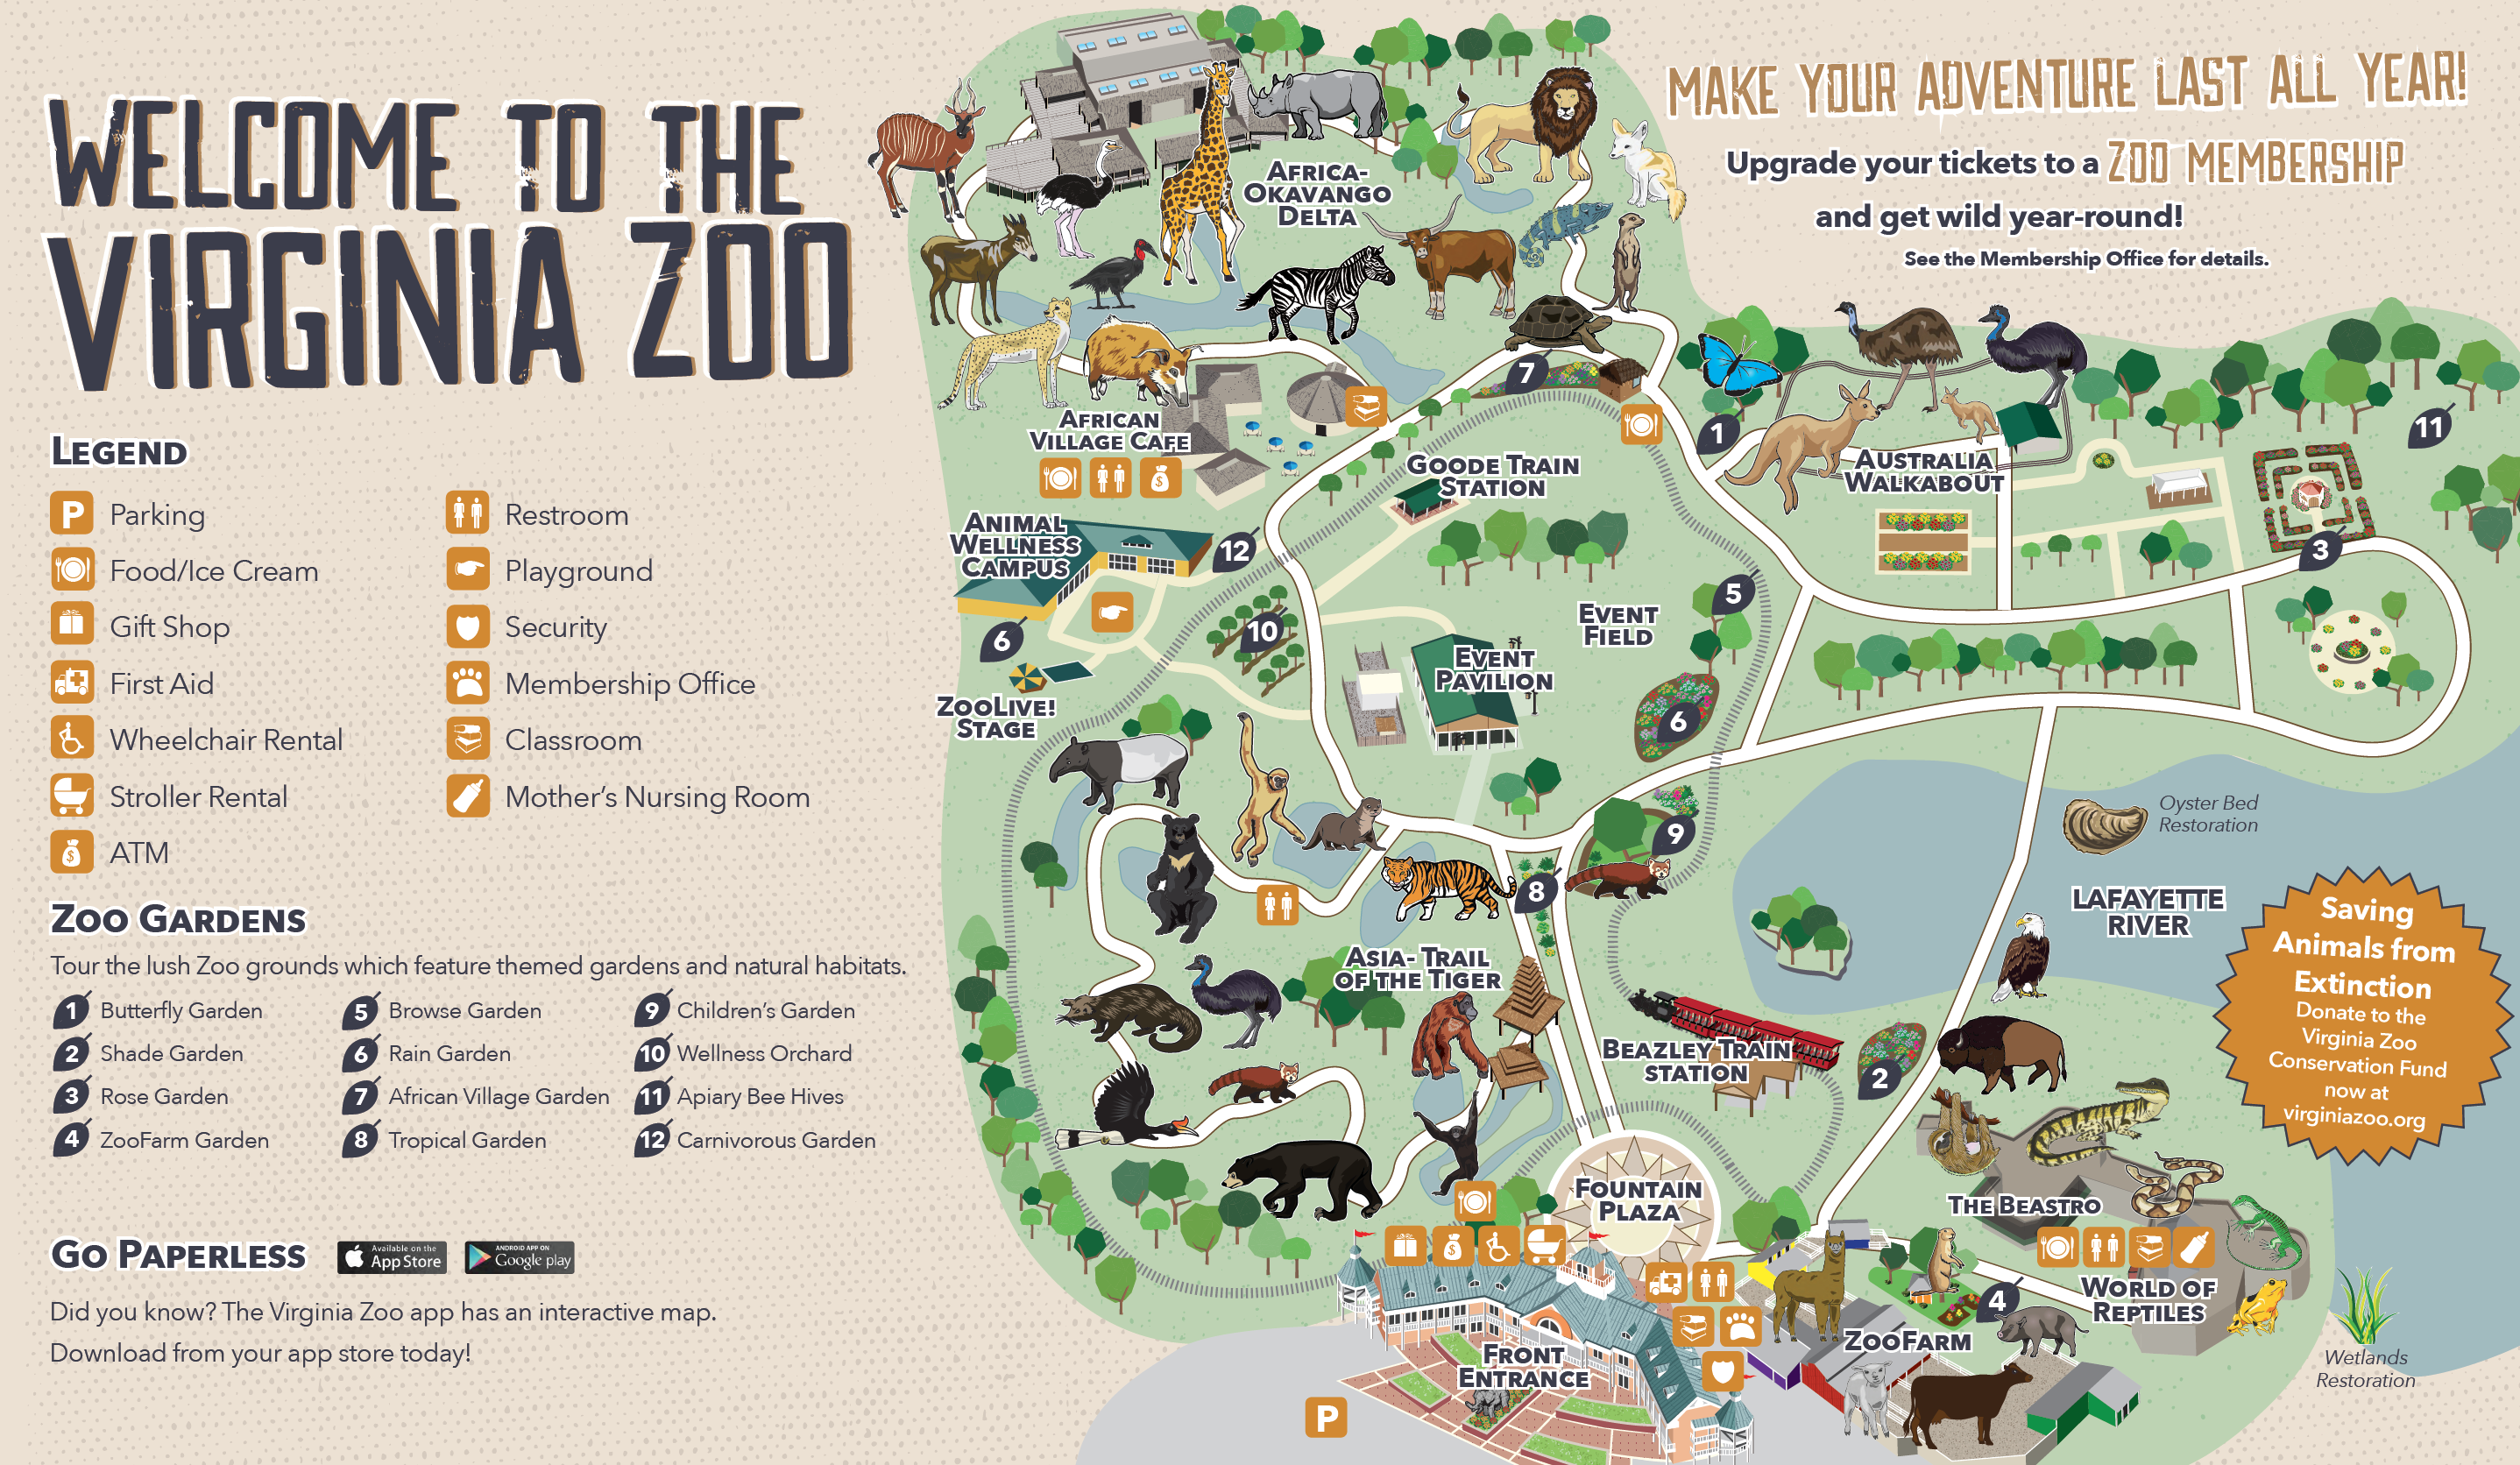 photograph regarding Printable Maps of Virginia referred to as Zoo Map - Virginia Zoo within Norfolk